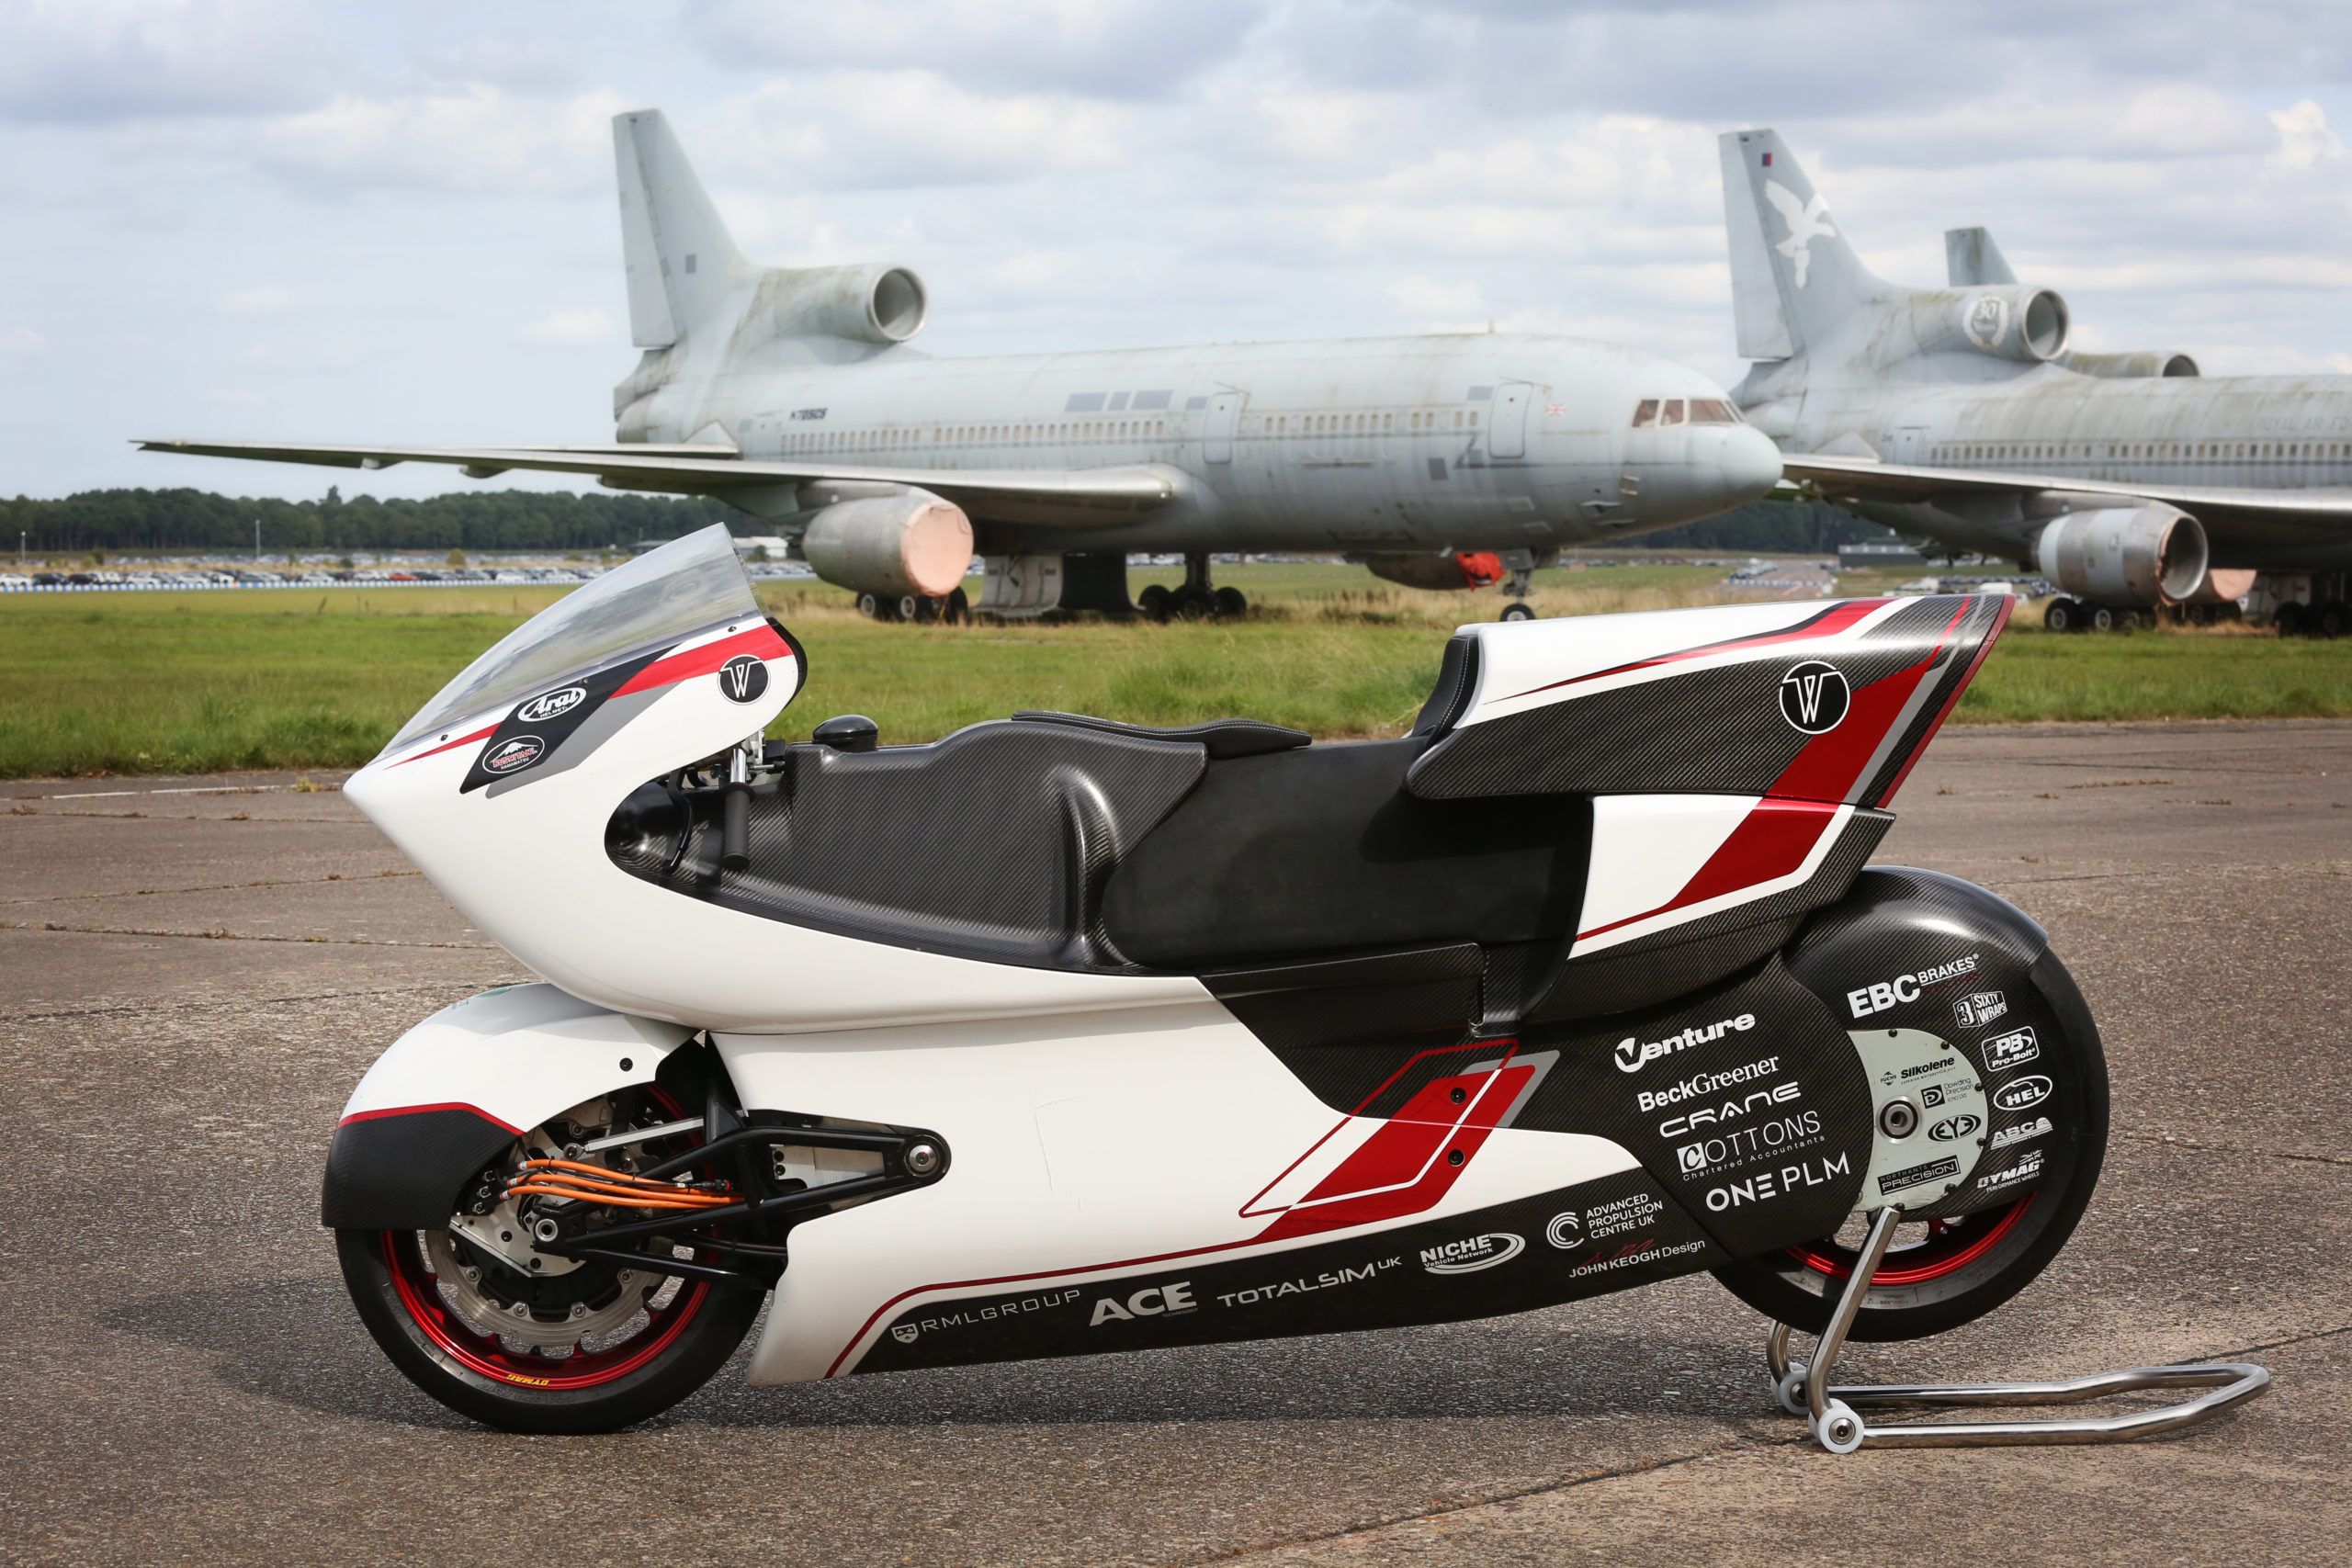 White-Motorcycle-Concepts-WCM250EV-6-scaled.jpg